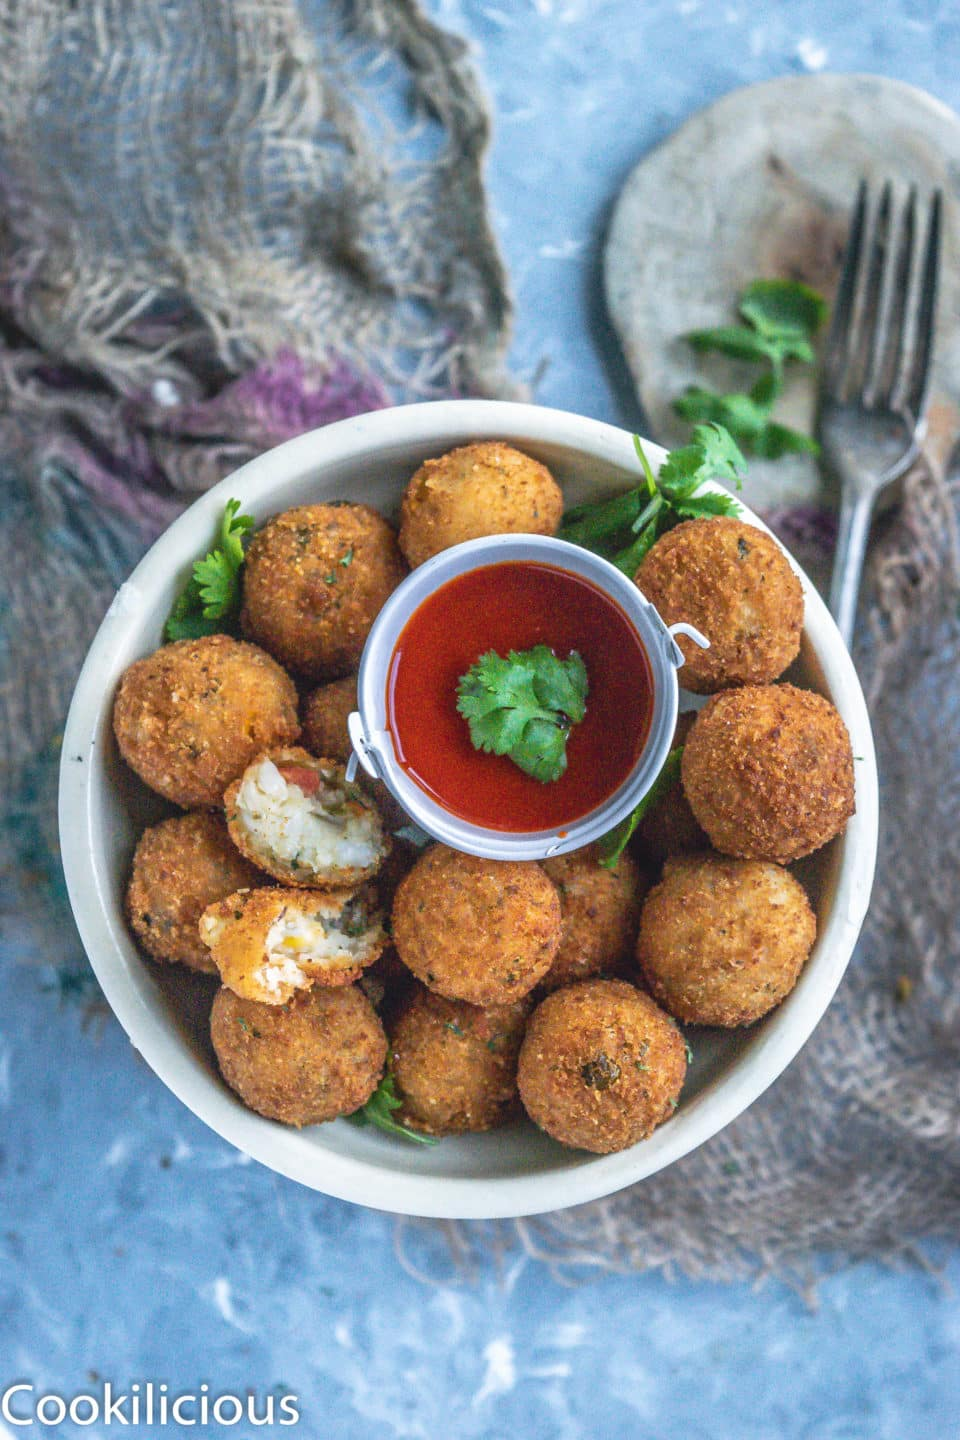 Semolina Vegetable Bites in a plate with a bowl of ketchup in the middle